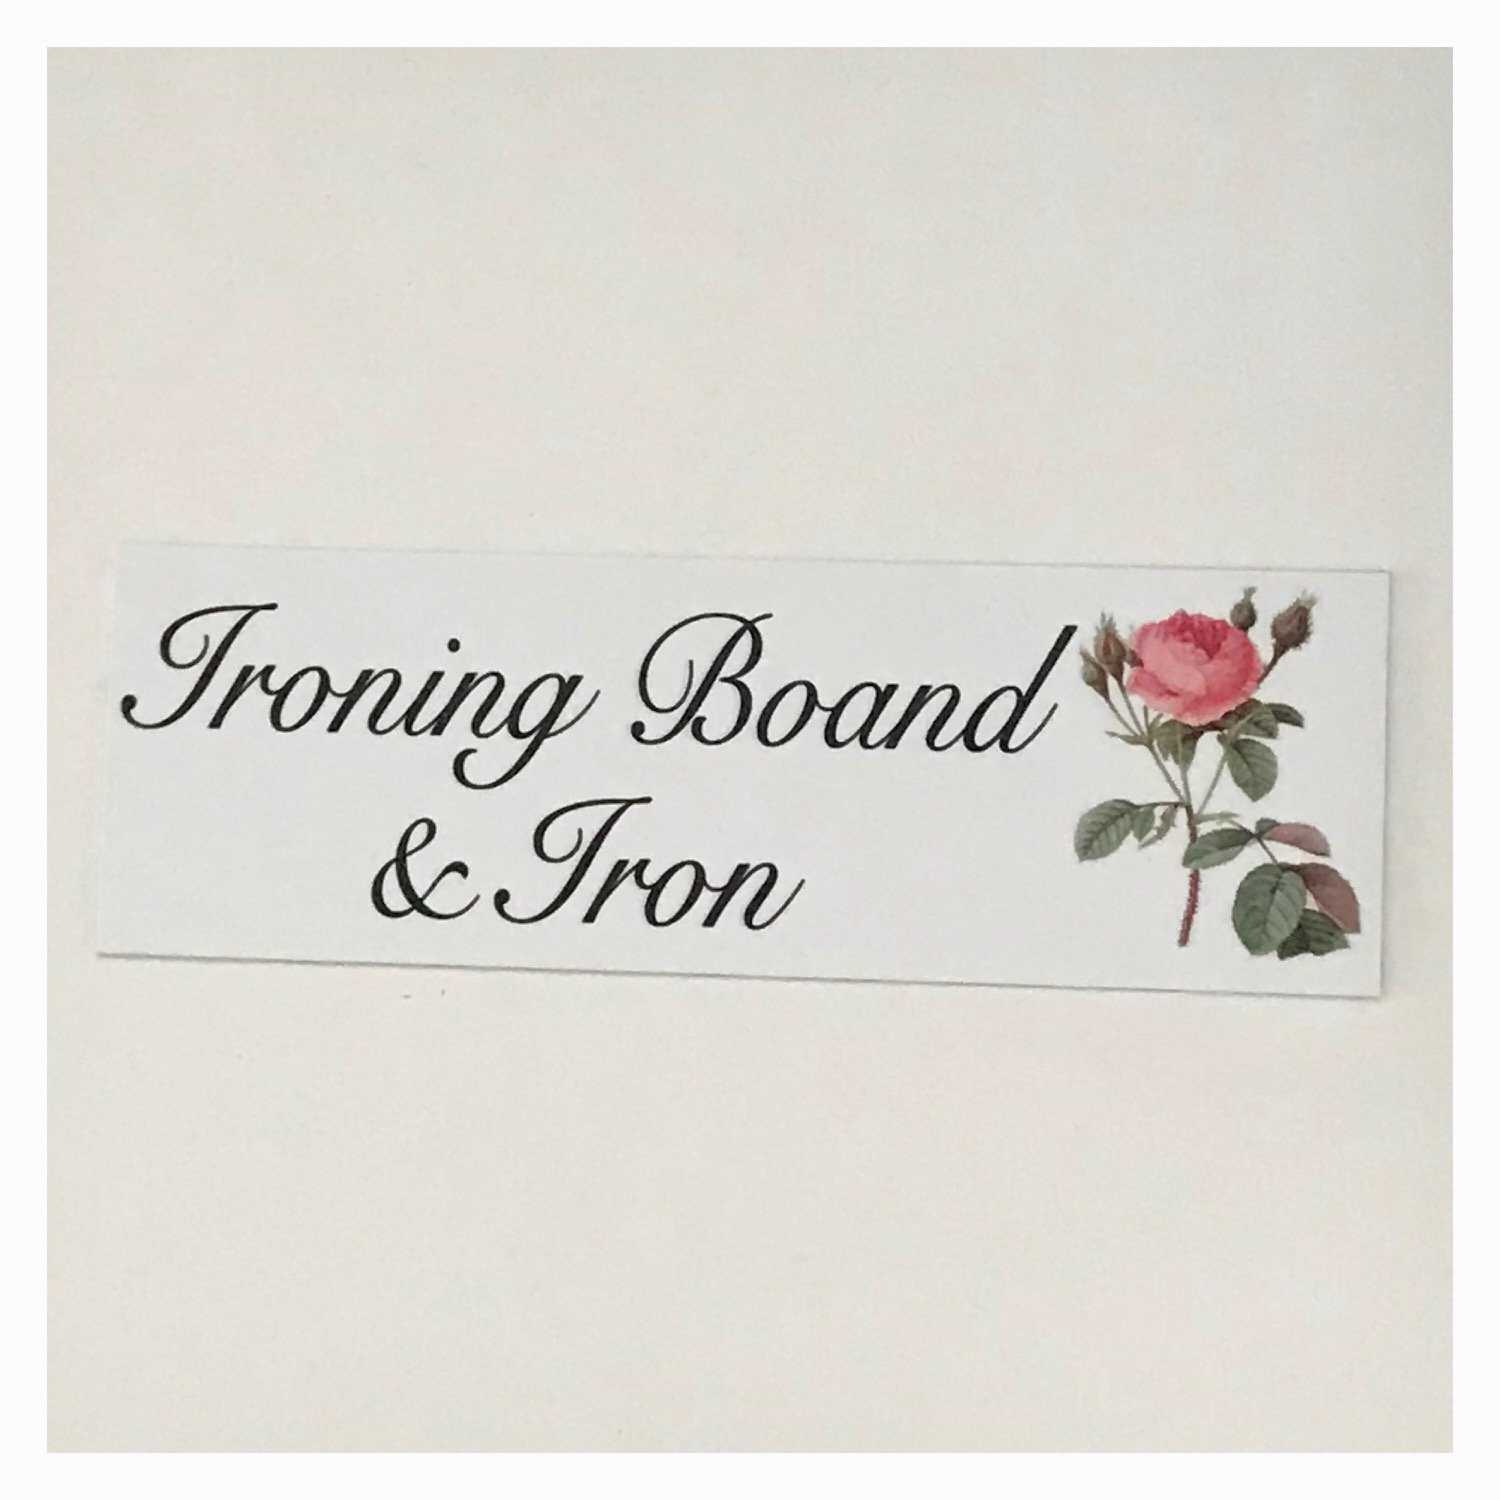 Ironing Board & Iron Sign Wall Plaque or Hanging - The Renmy Store